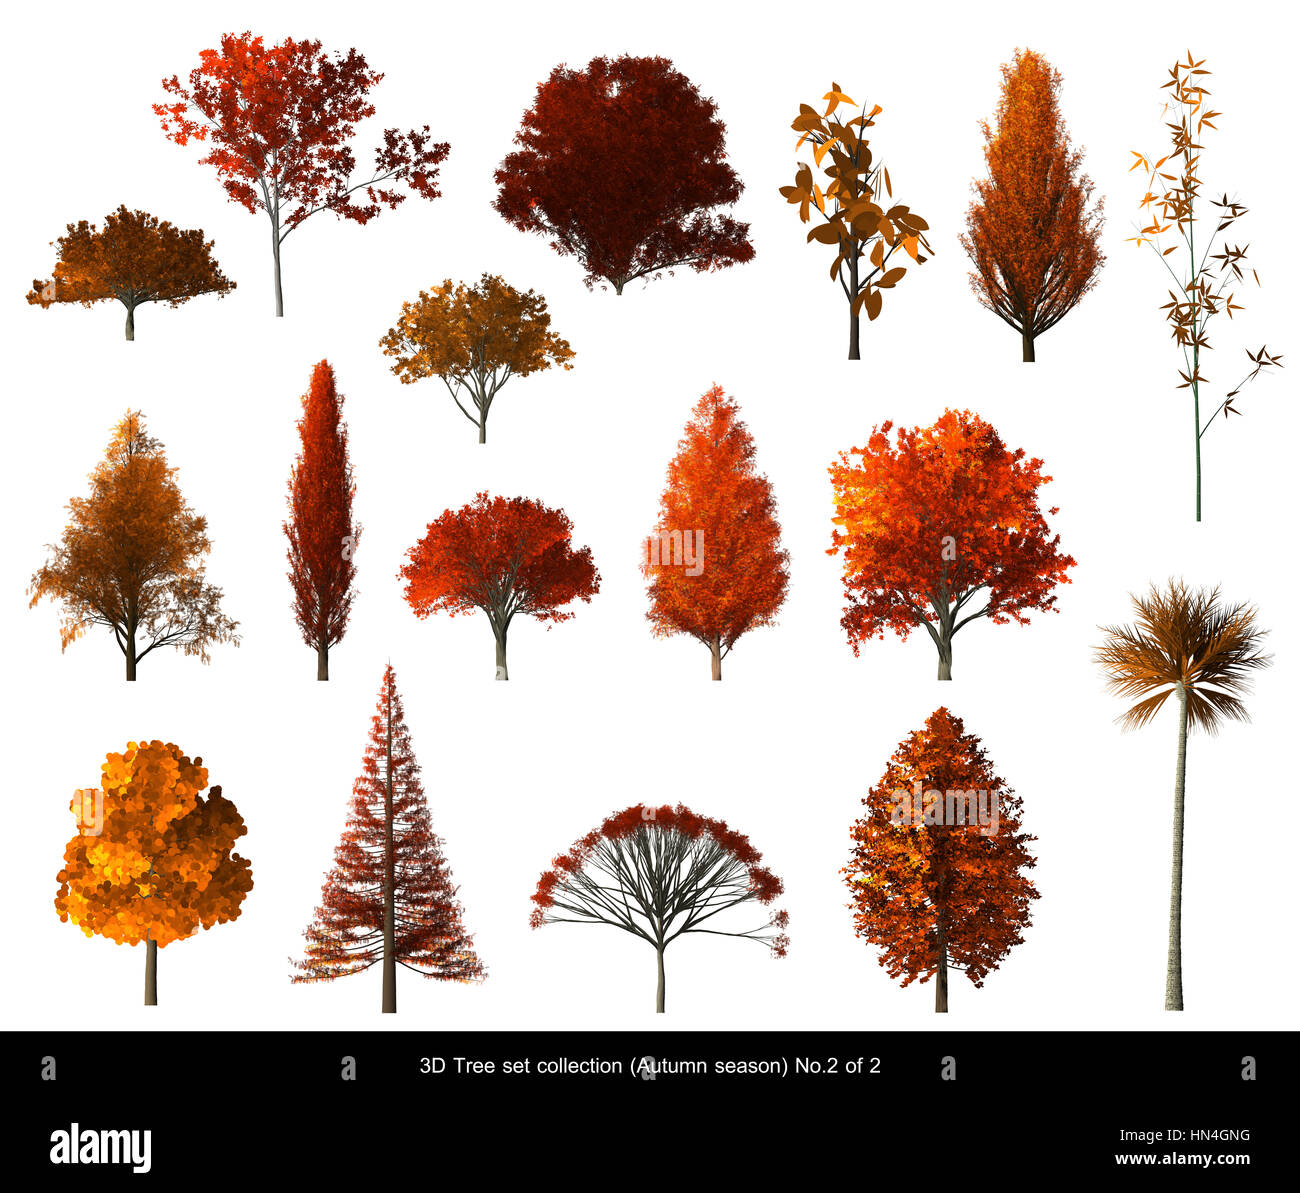 Red Leaf Tree Autumn Season Set For Architecture Landscape Design, 3D Tree  Isolated On White